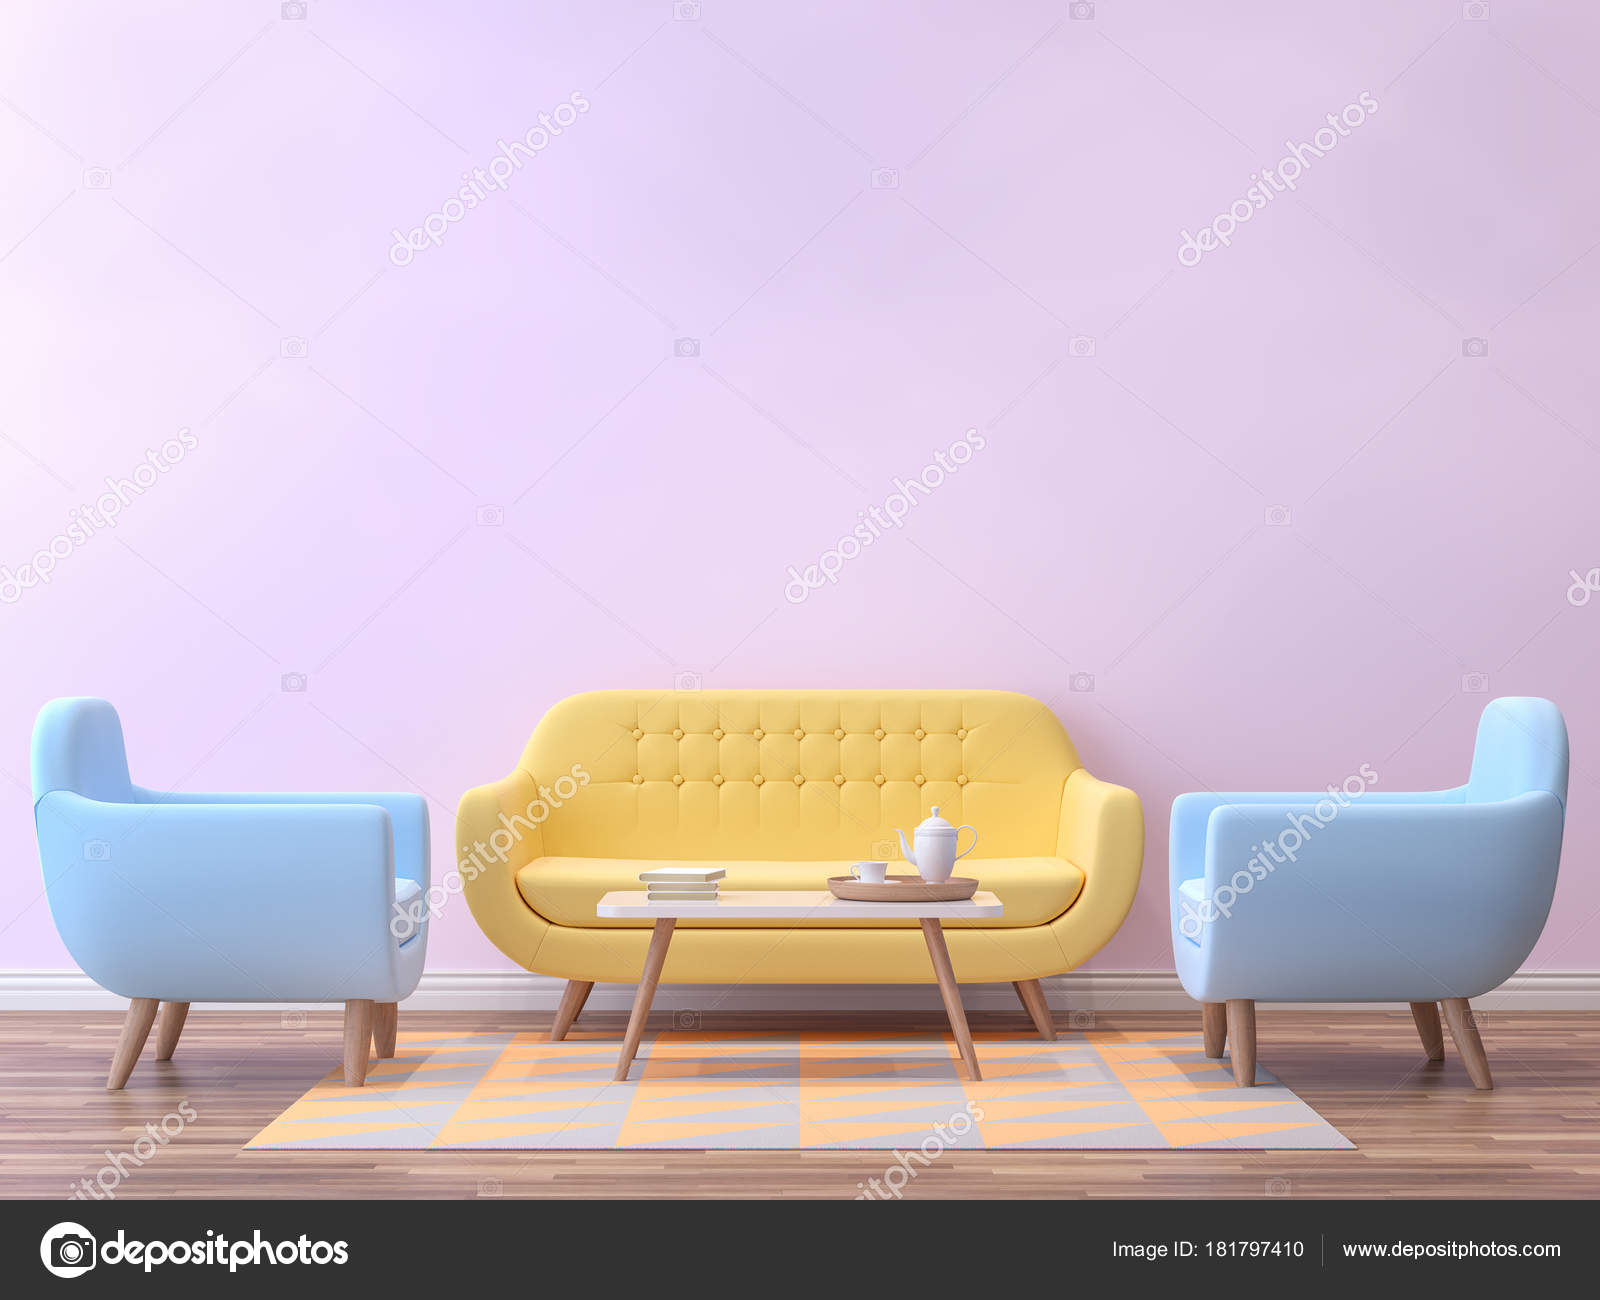 Colorful Living Room With Pastel Color 3d Rendering ImageThere Are Minimalist Style Image Pink Empty Wallwood Floor Furnished Yellow And Blue